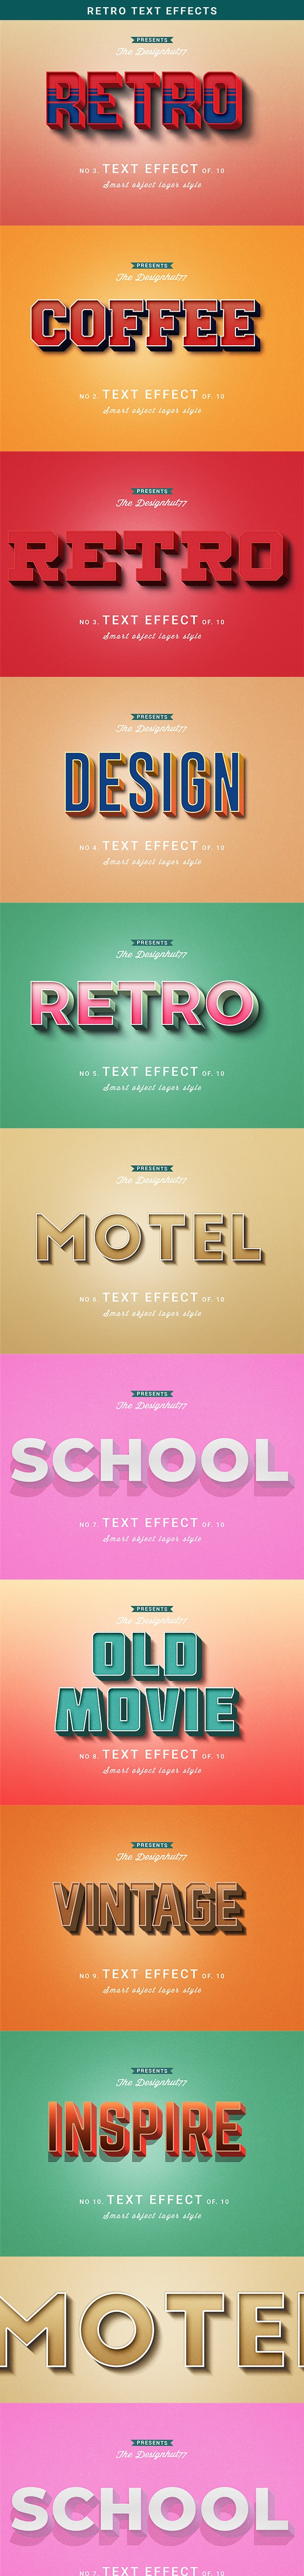 Retro Text Effect - Text Effects Actions